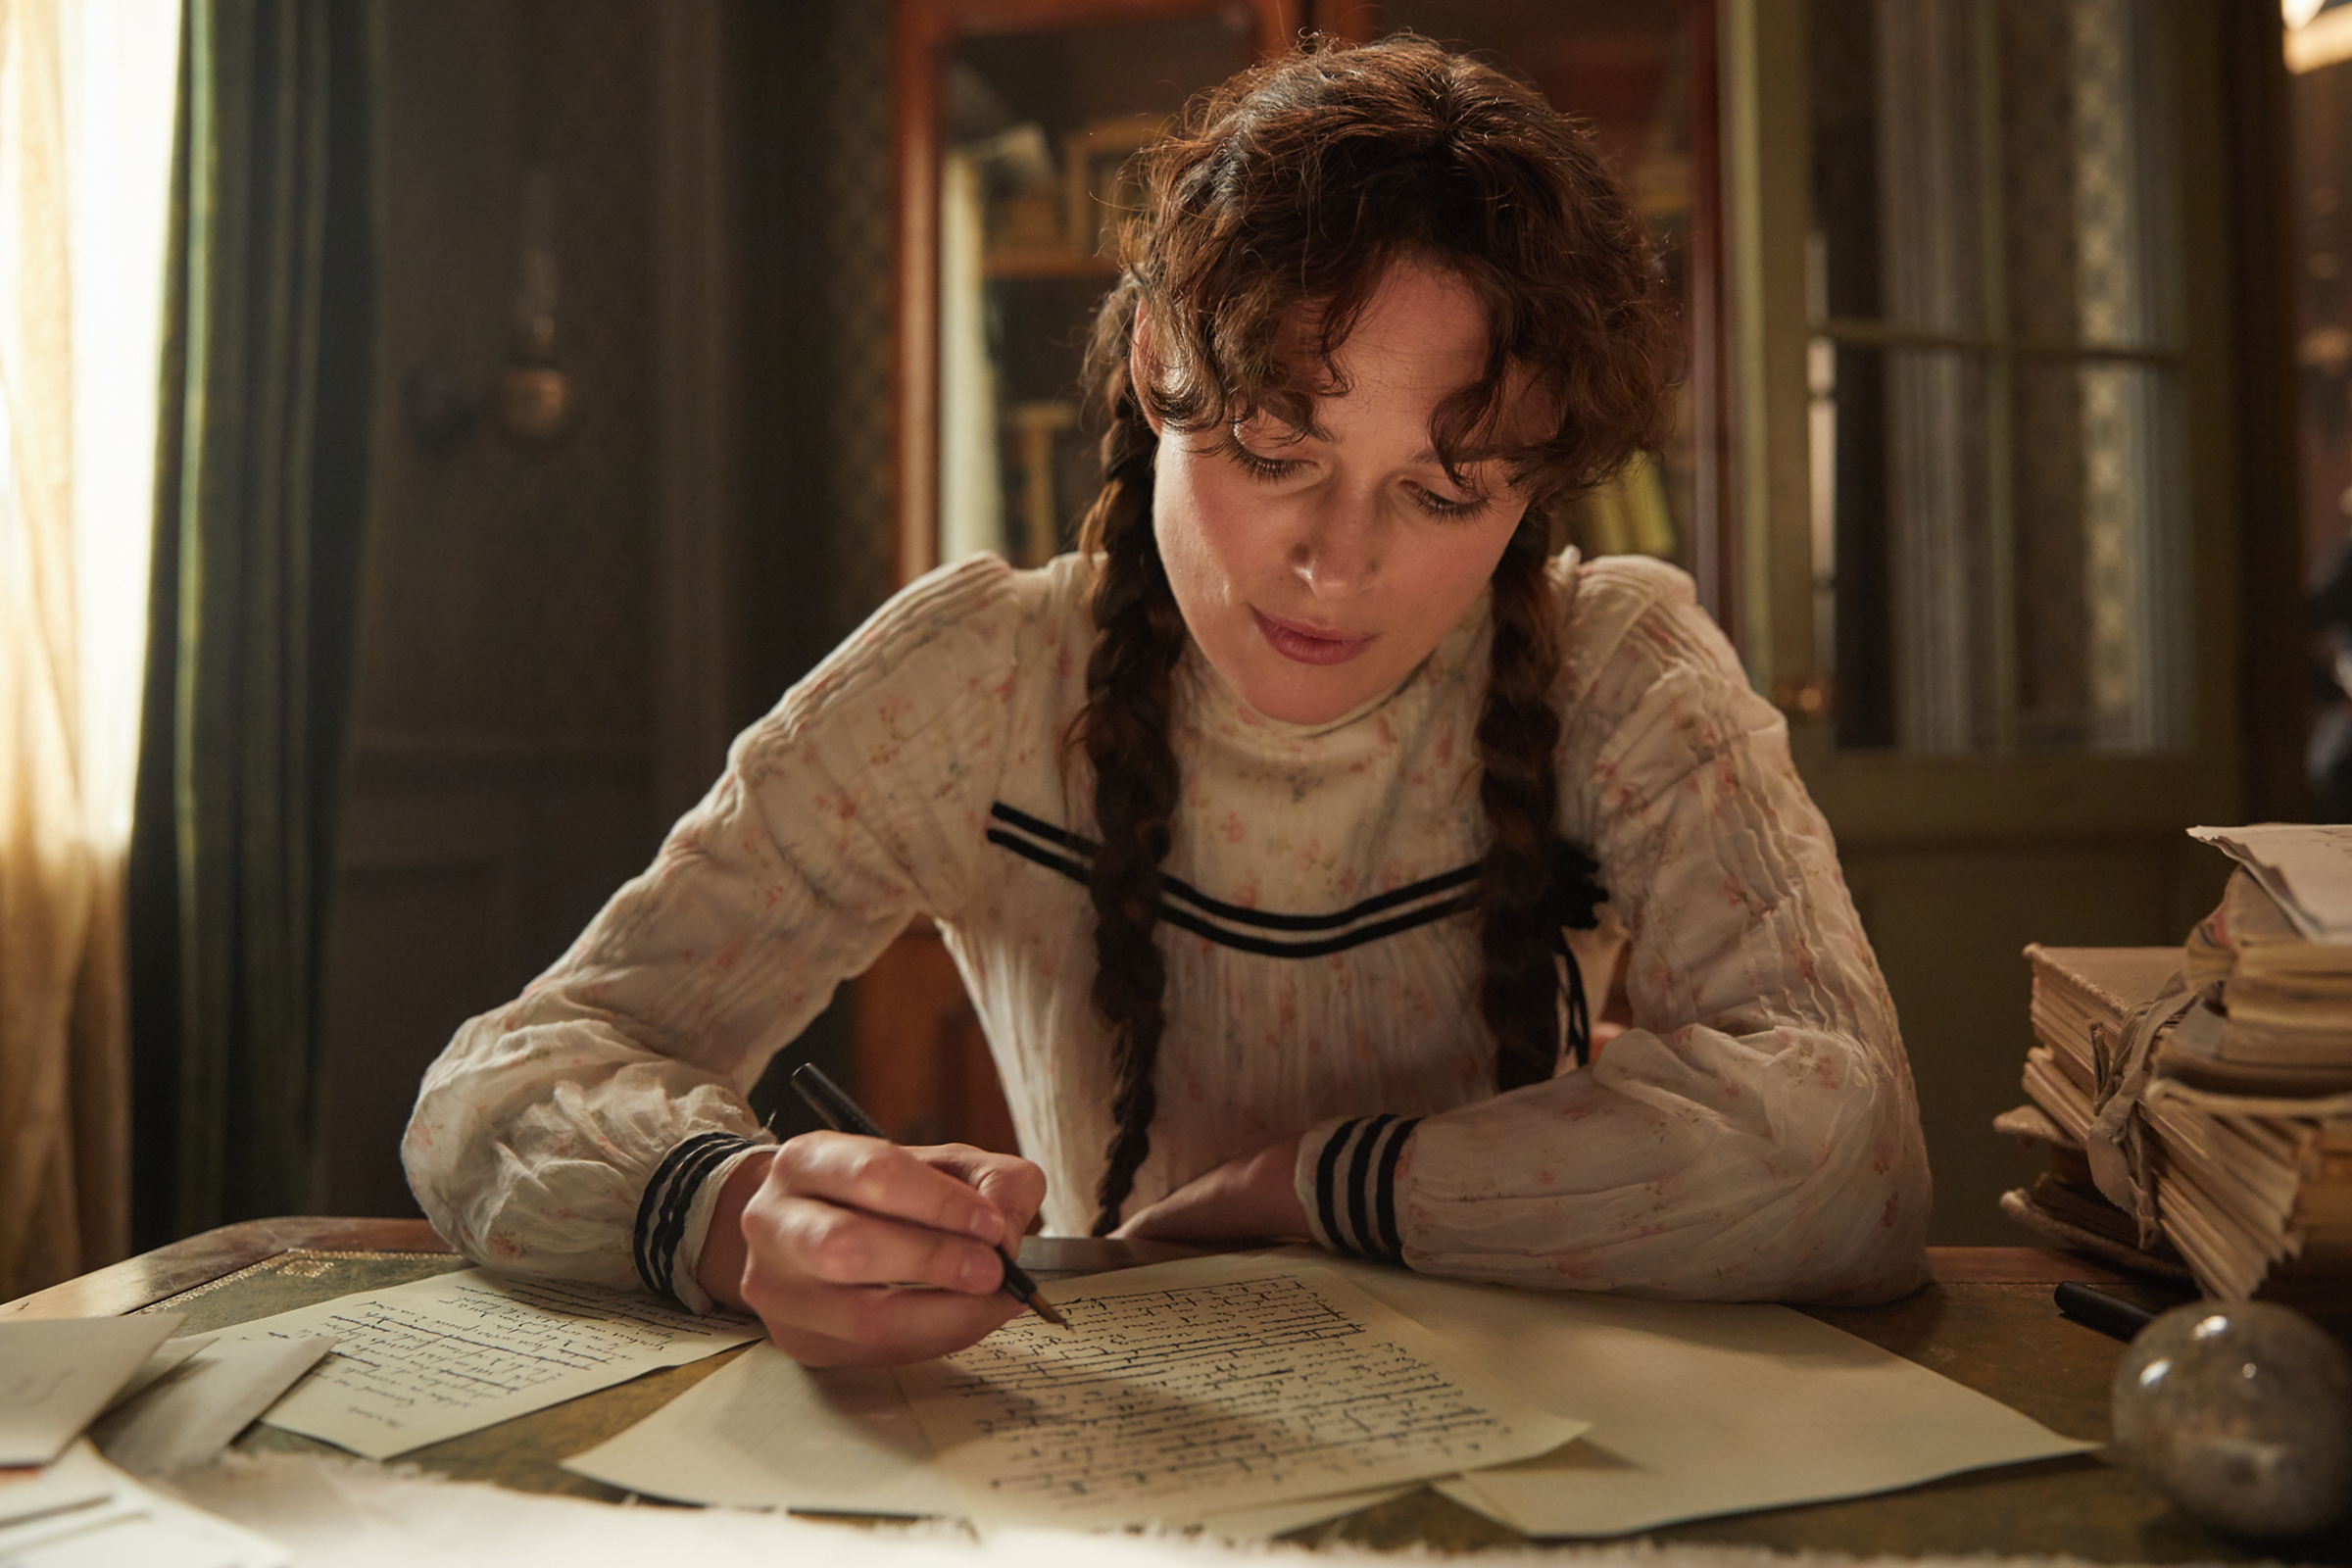 Keira Knightley in Colette. Photo: Transmission Films